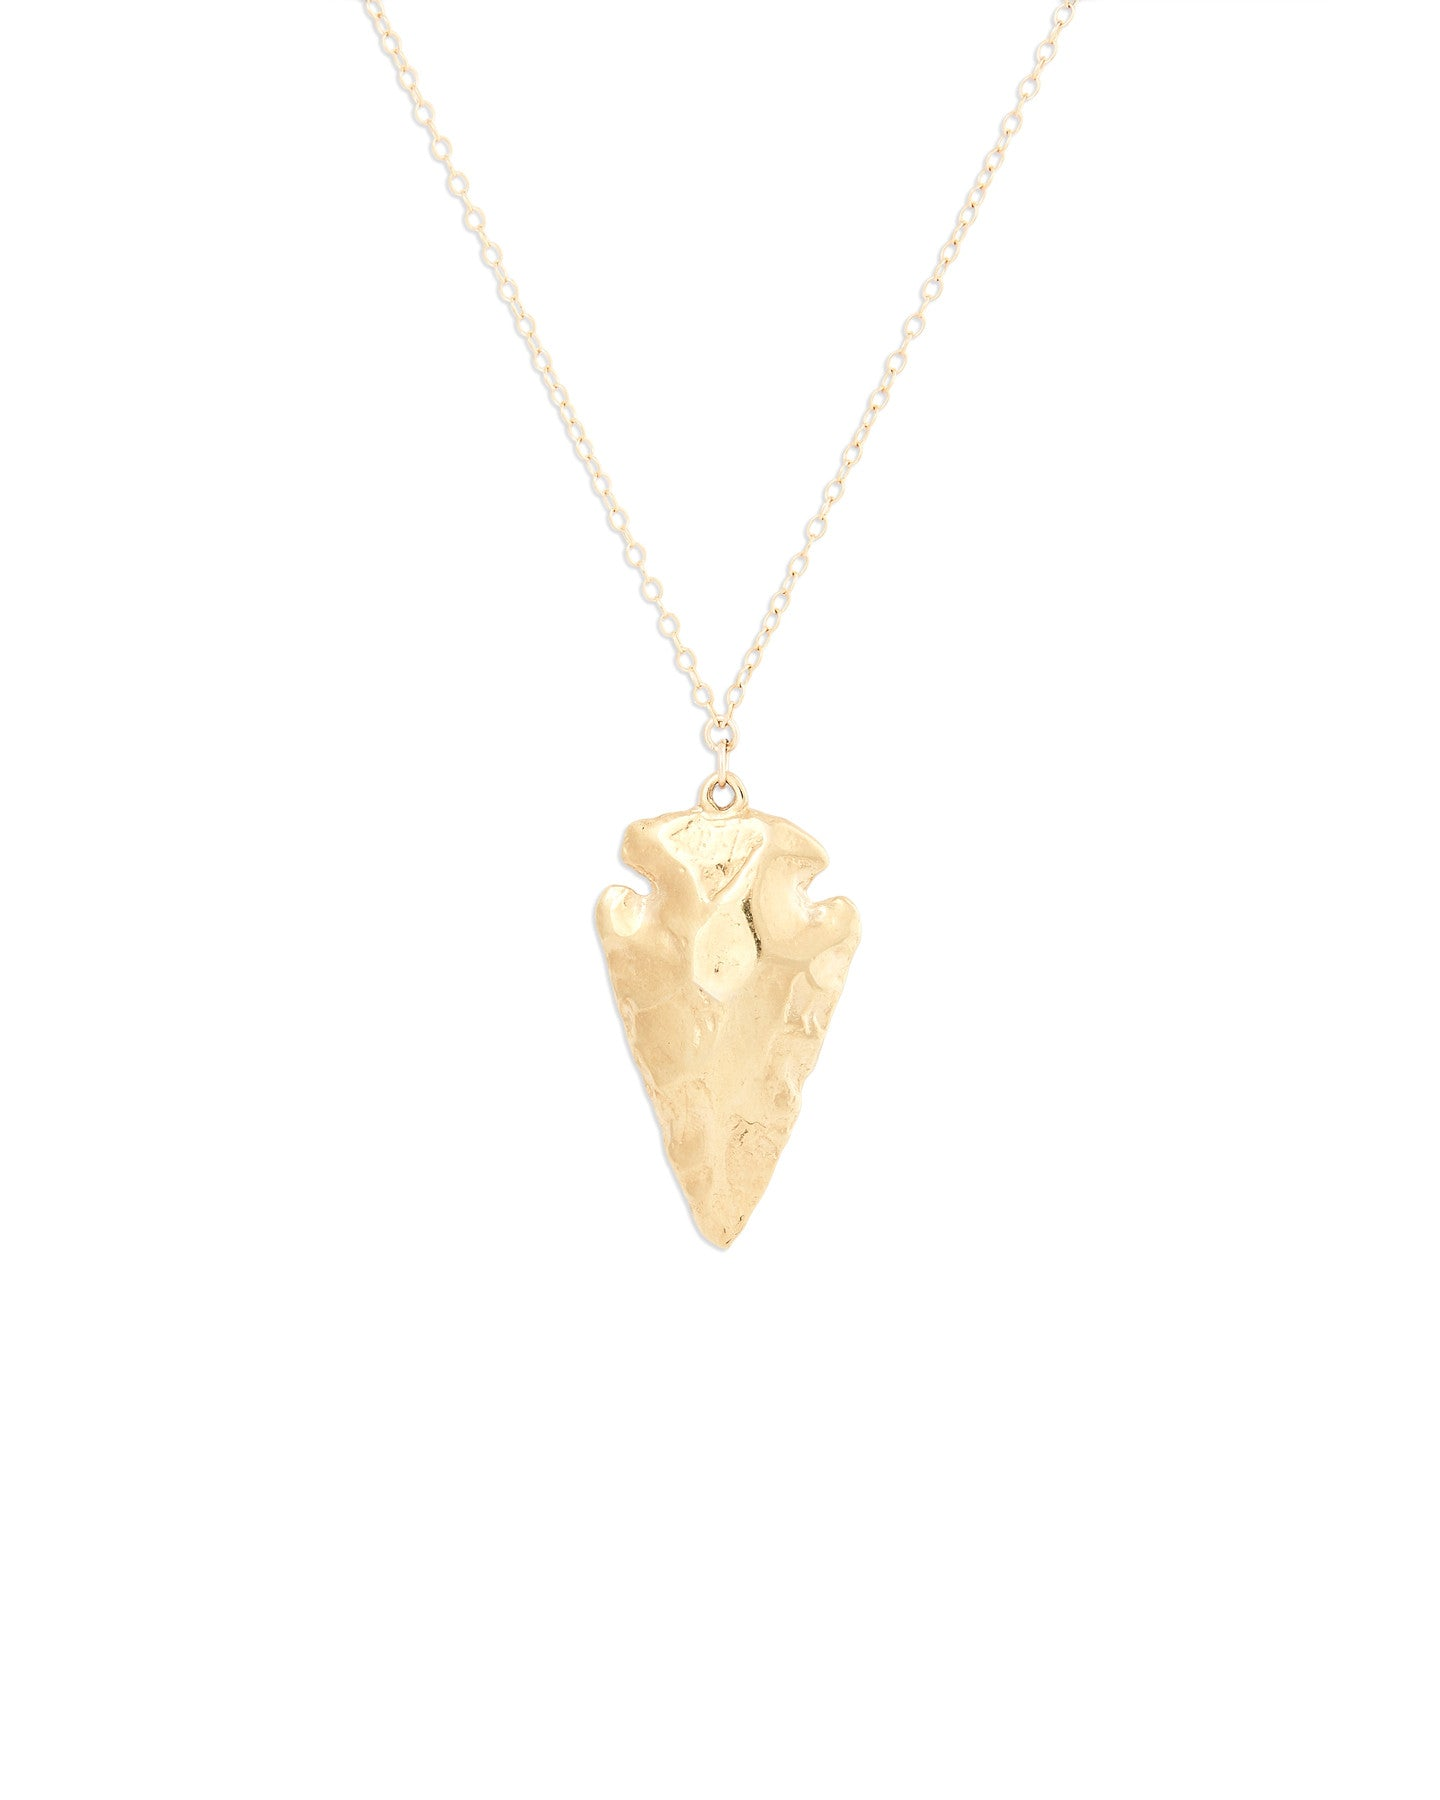 GOLD ARROWHEAD